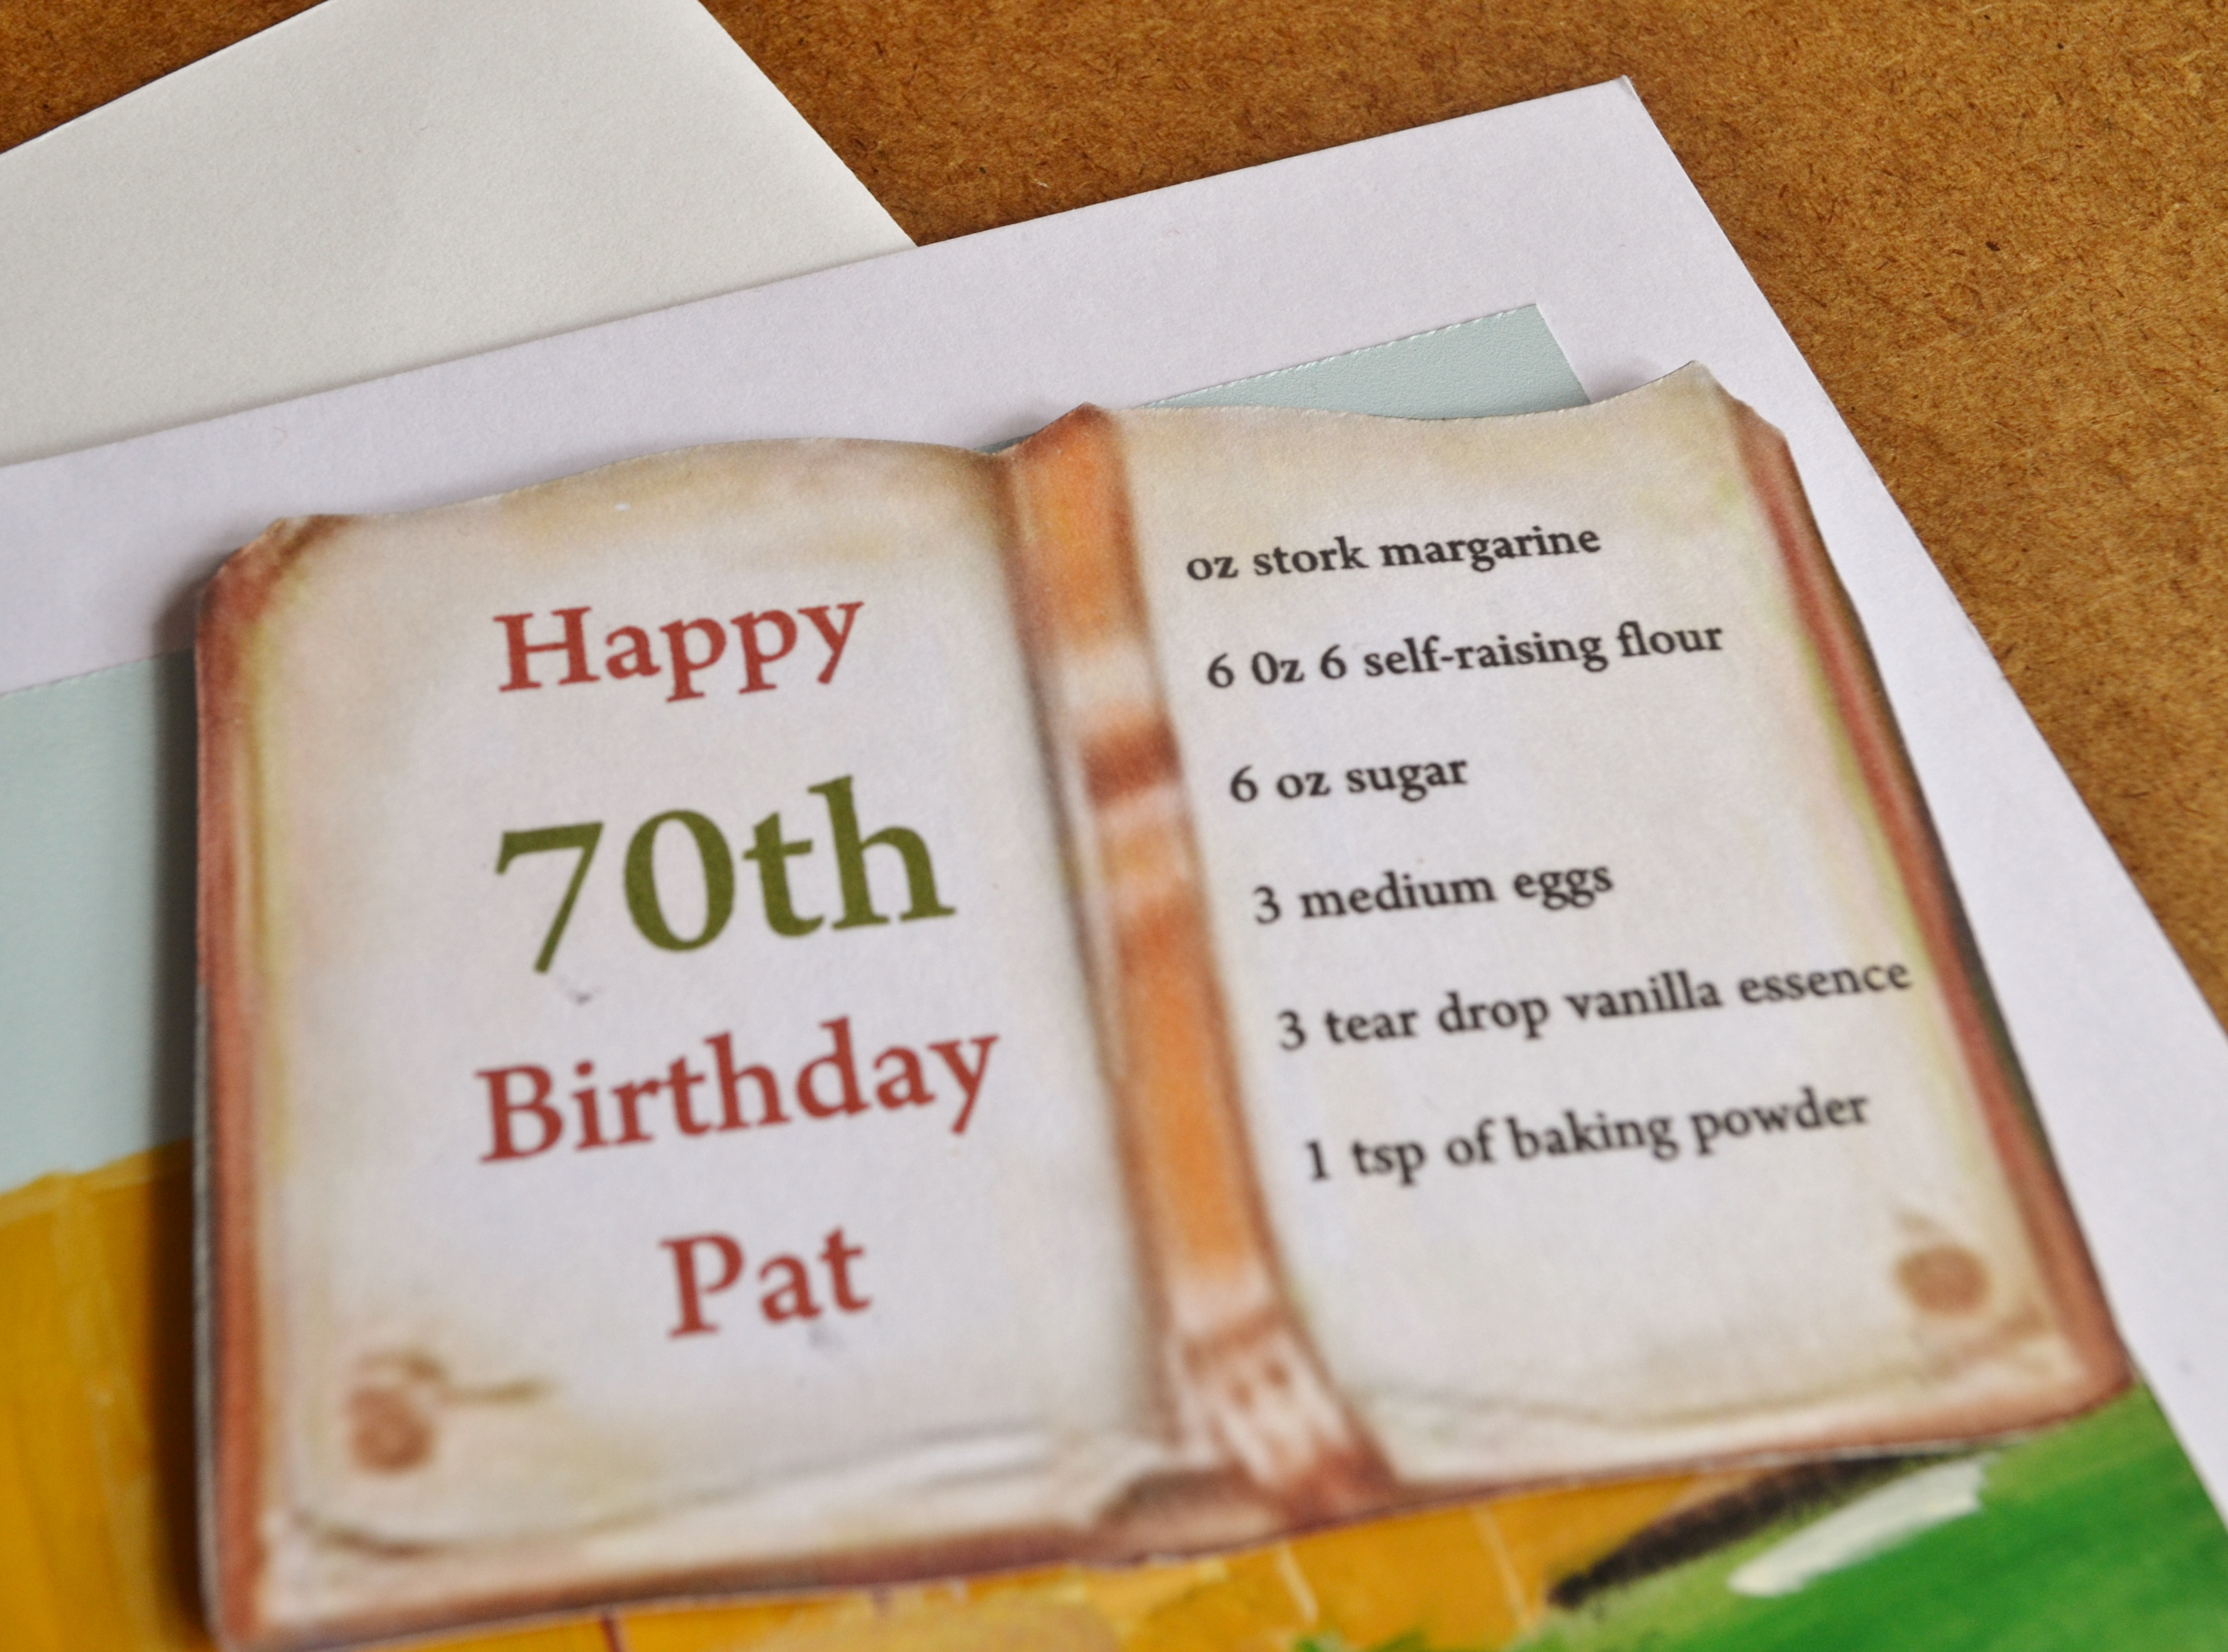 Personalised handcrafted greeting cards for all occasions